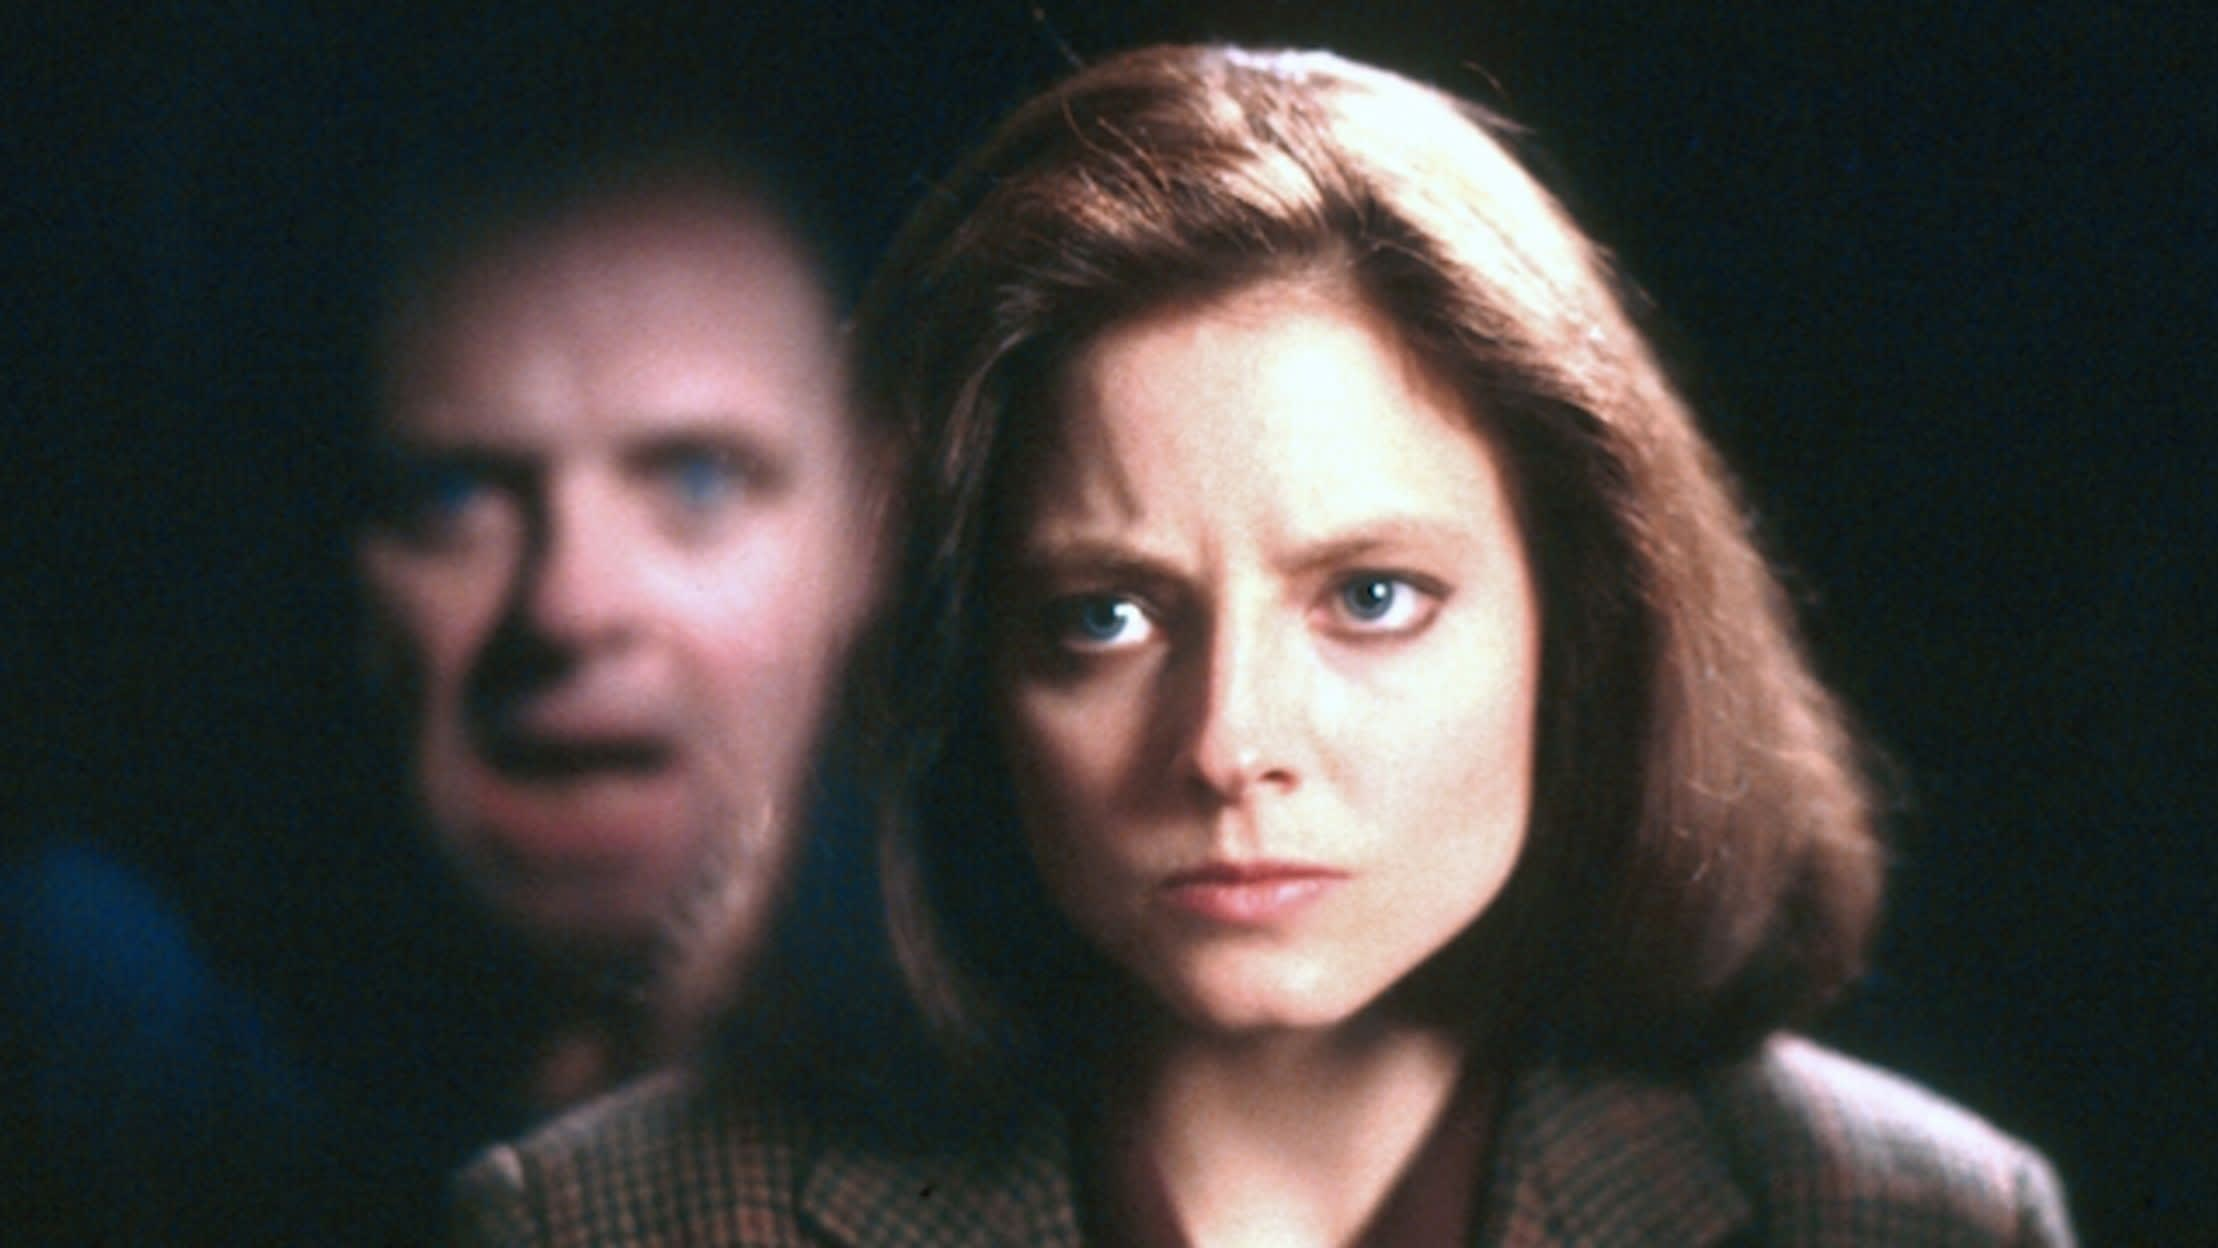 106840012 1613146763676silence of the lambs Cropped jpg?v=1613146777.